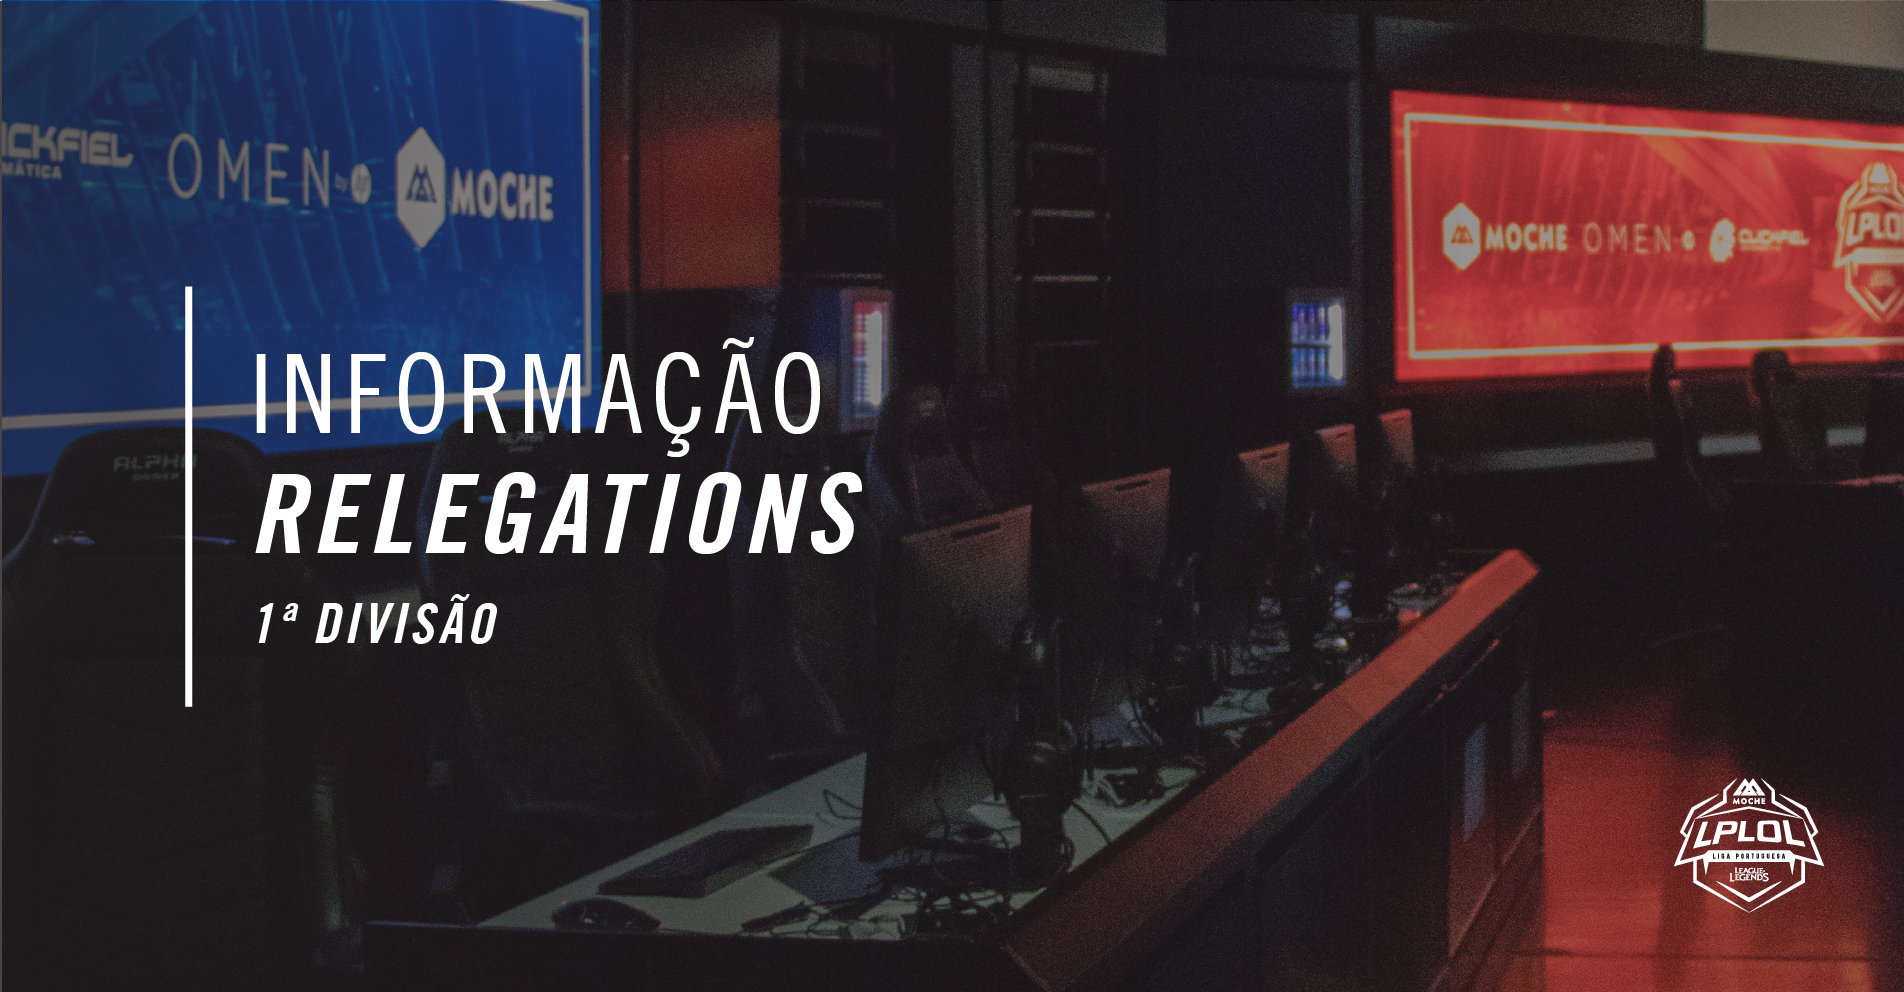 Relegations do 1º Split serão disputados na ClickFiel Arena!